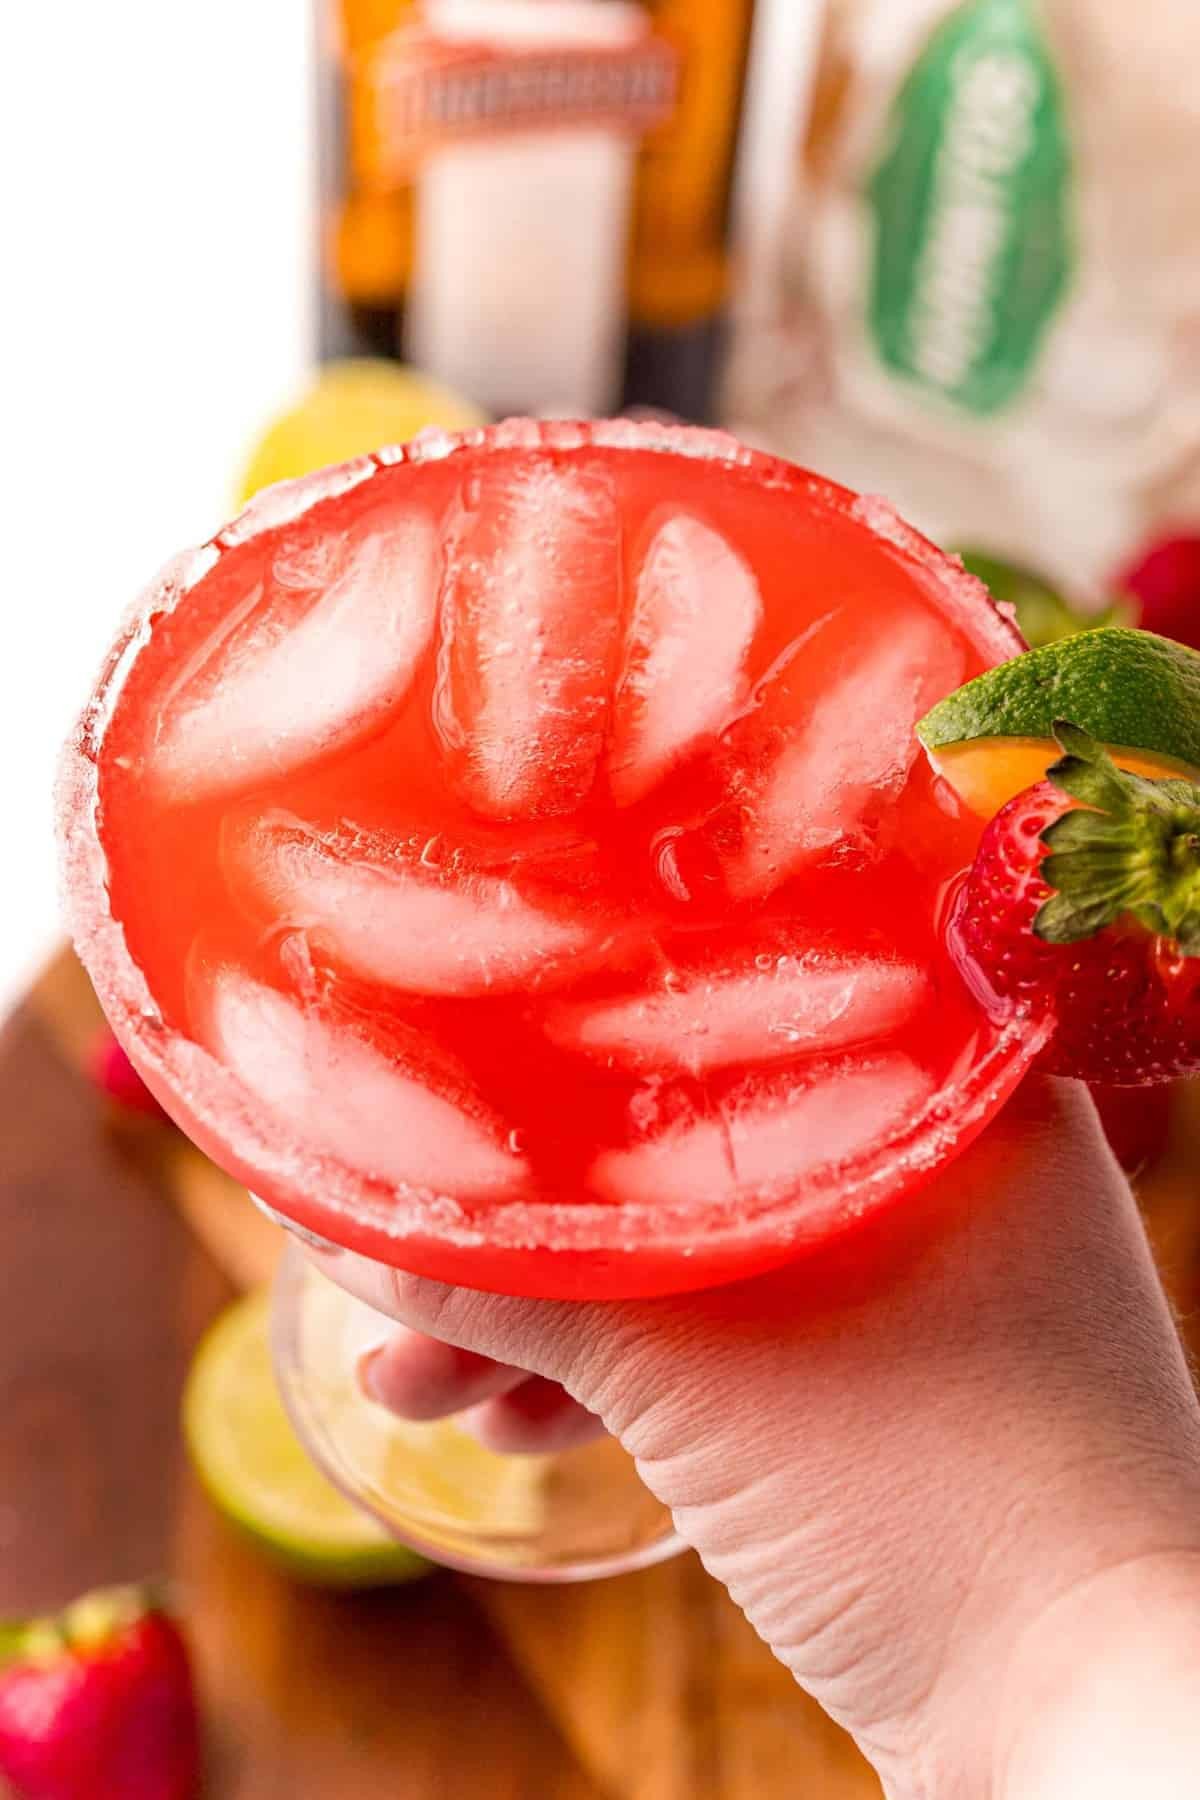 Glass of punch garnished with strawberry being held in a hand.